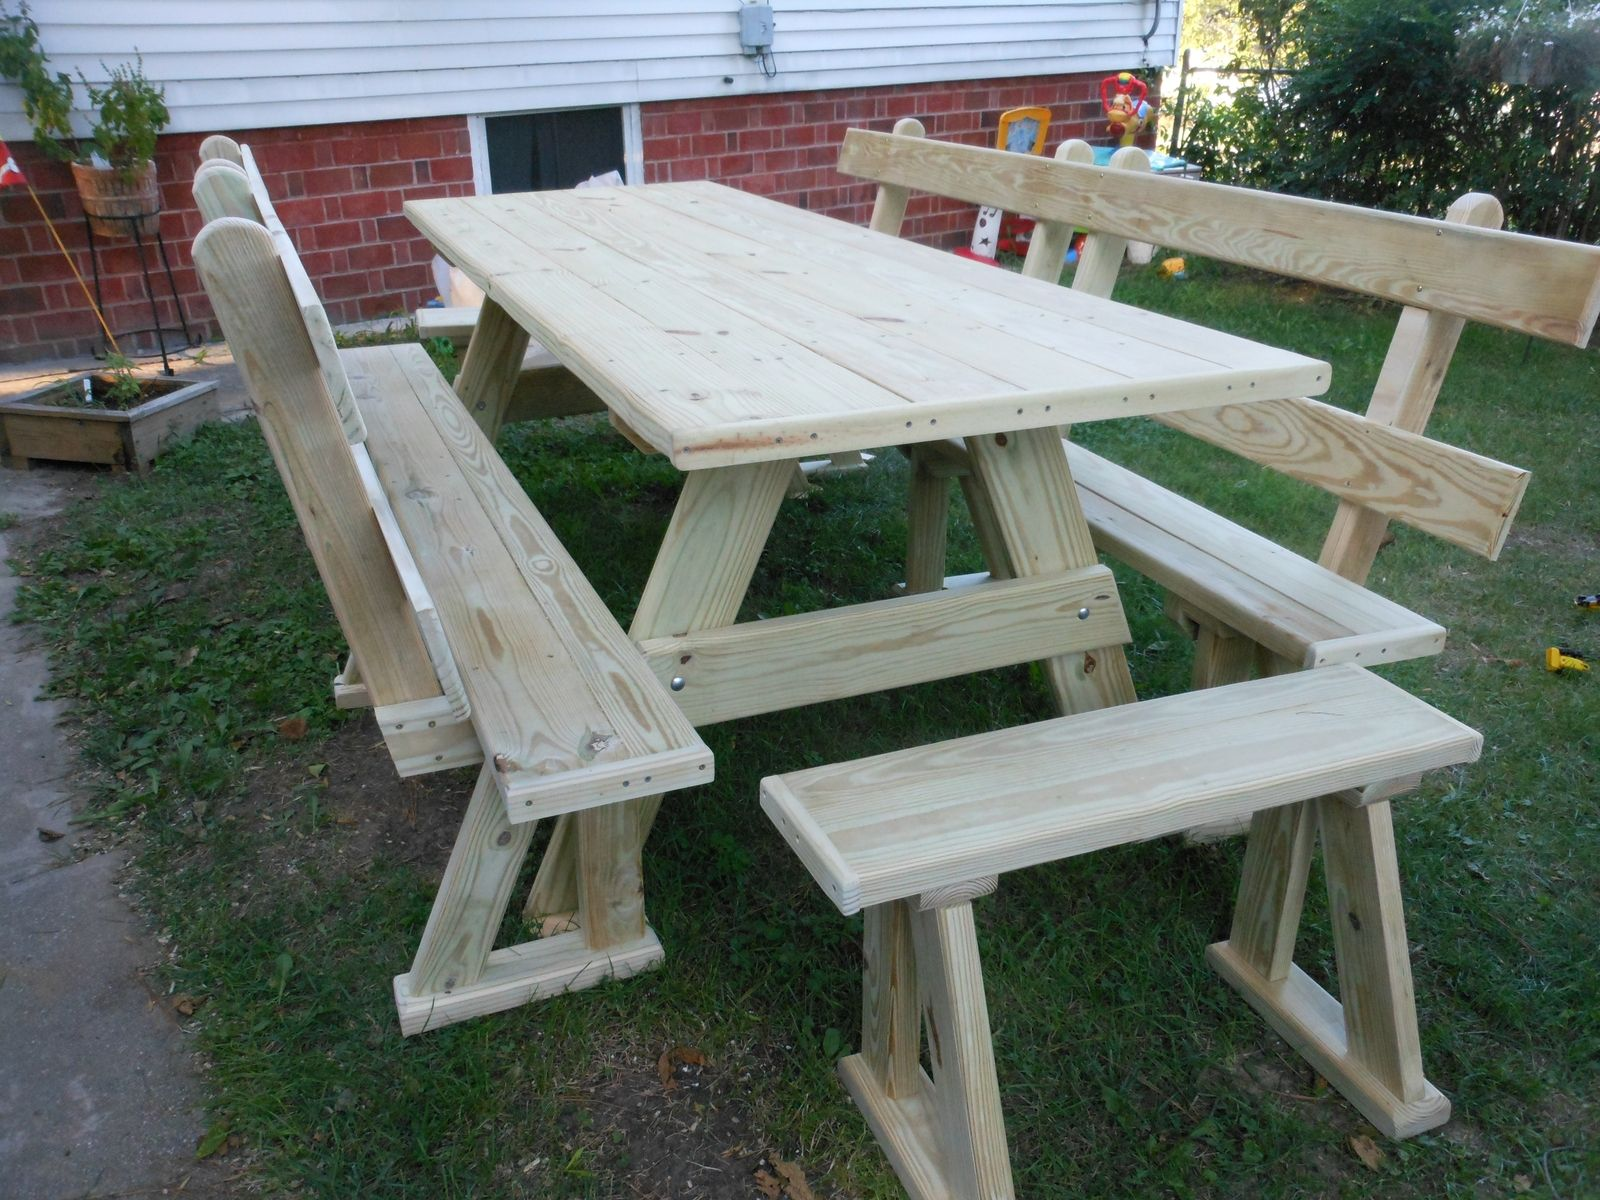 Picnic Table With Benches With Backs Picnic Table Custom Outdoor Furniture Build A Picnic Table